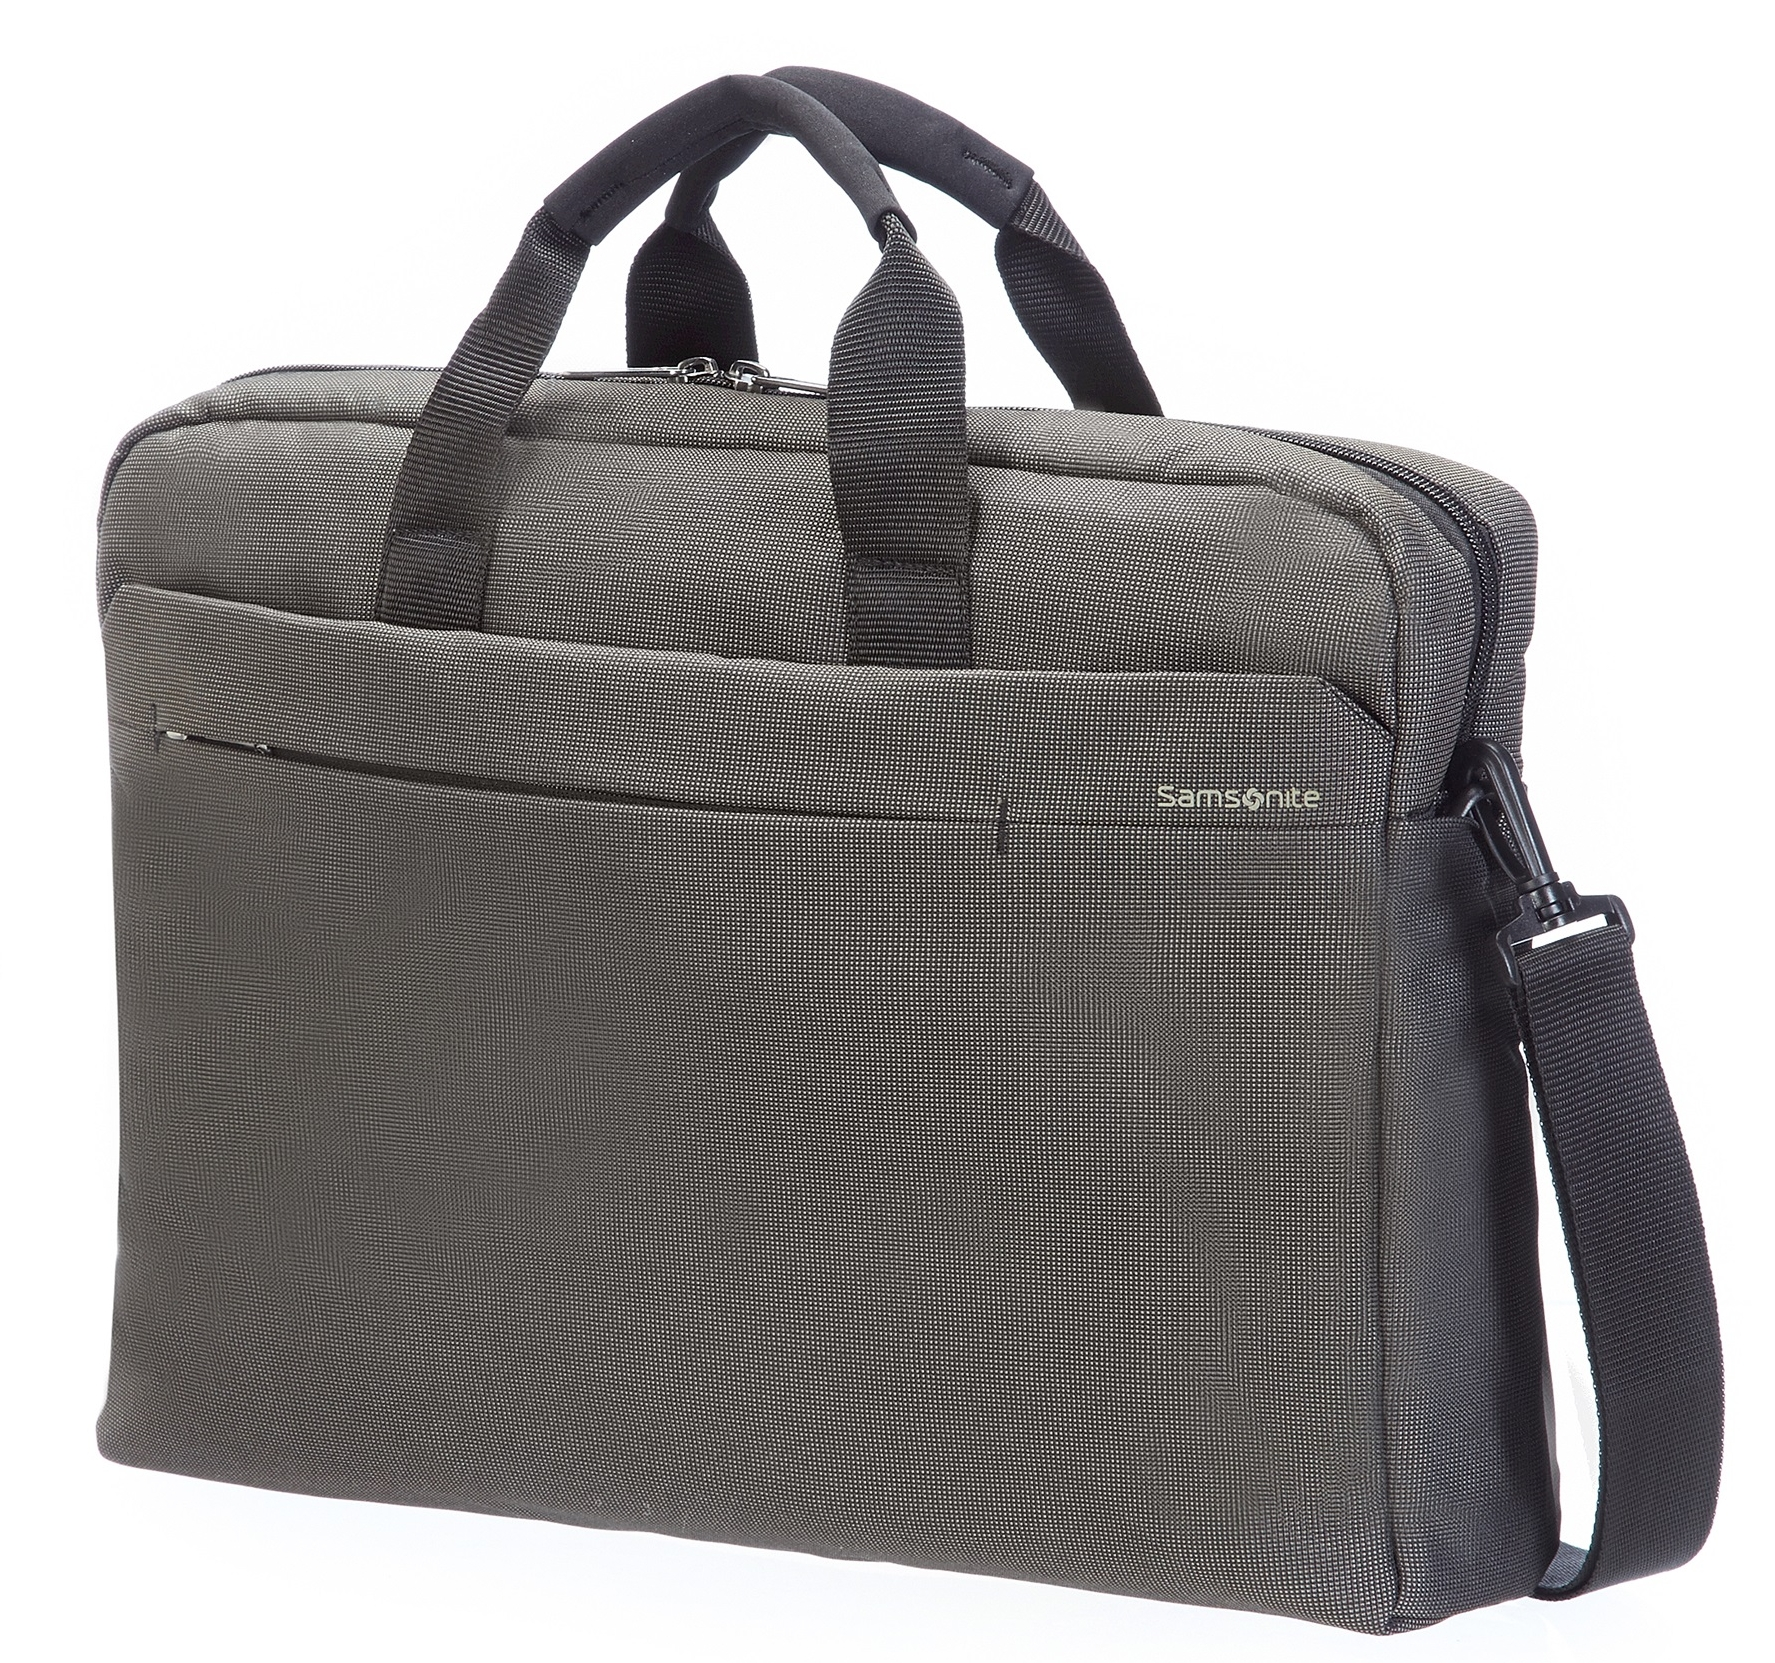 SAMSONITE - BORSE NOTEBOOK - 5414847367717